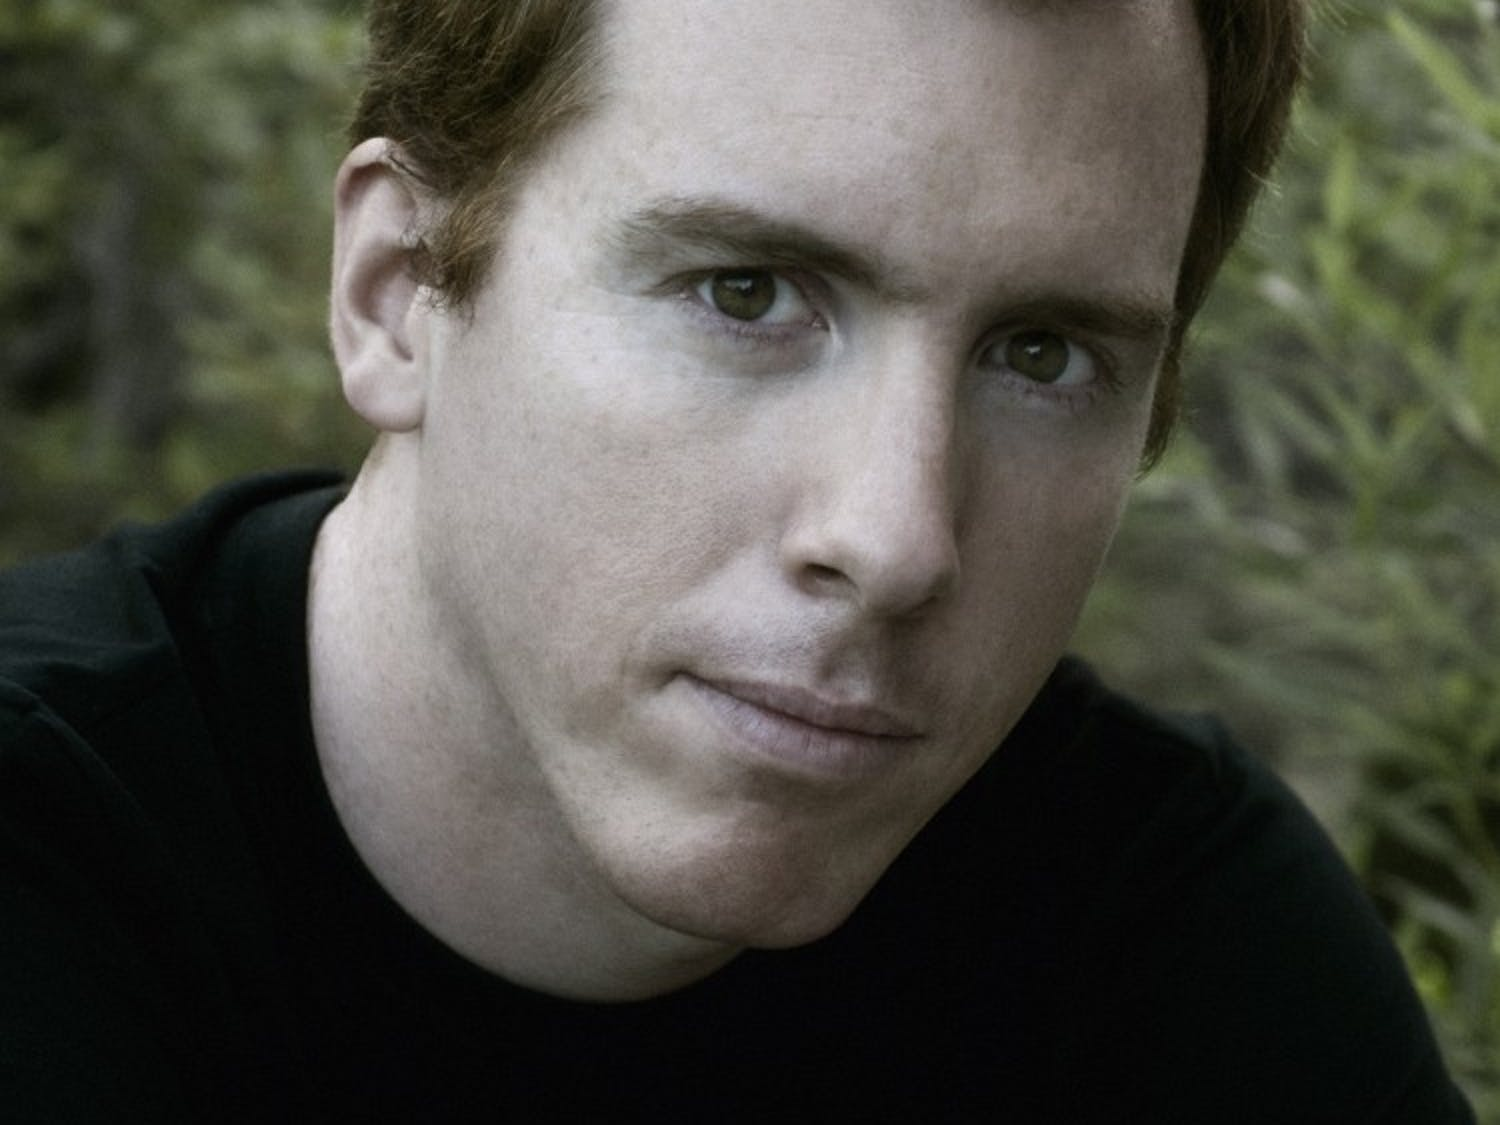 Eric Huebner spent his entire life surrounded by classical music. At 17, he debuted with the Los Angeles Philharmonic and took his first major step toward an exceptional career.